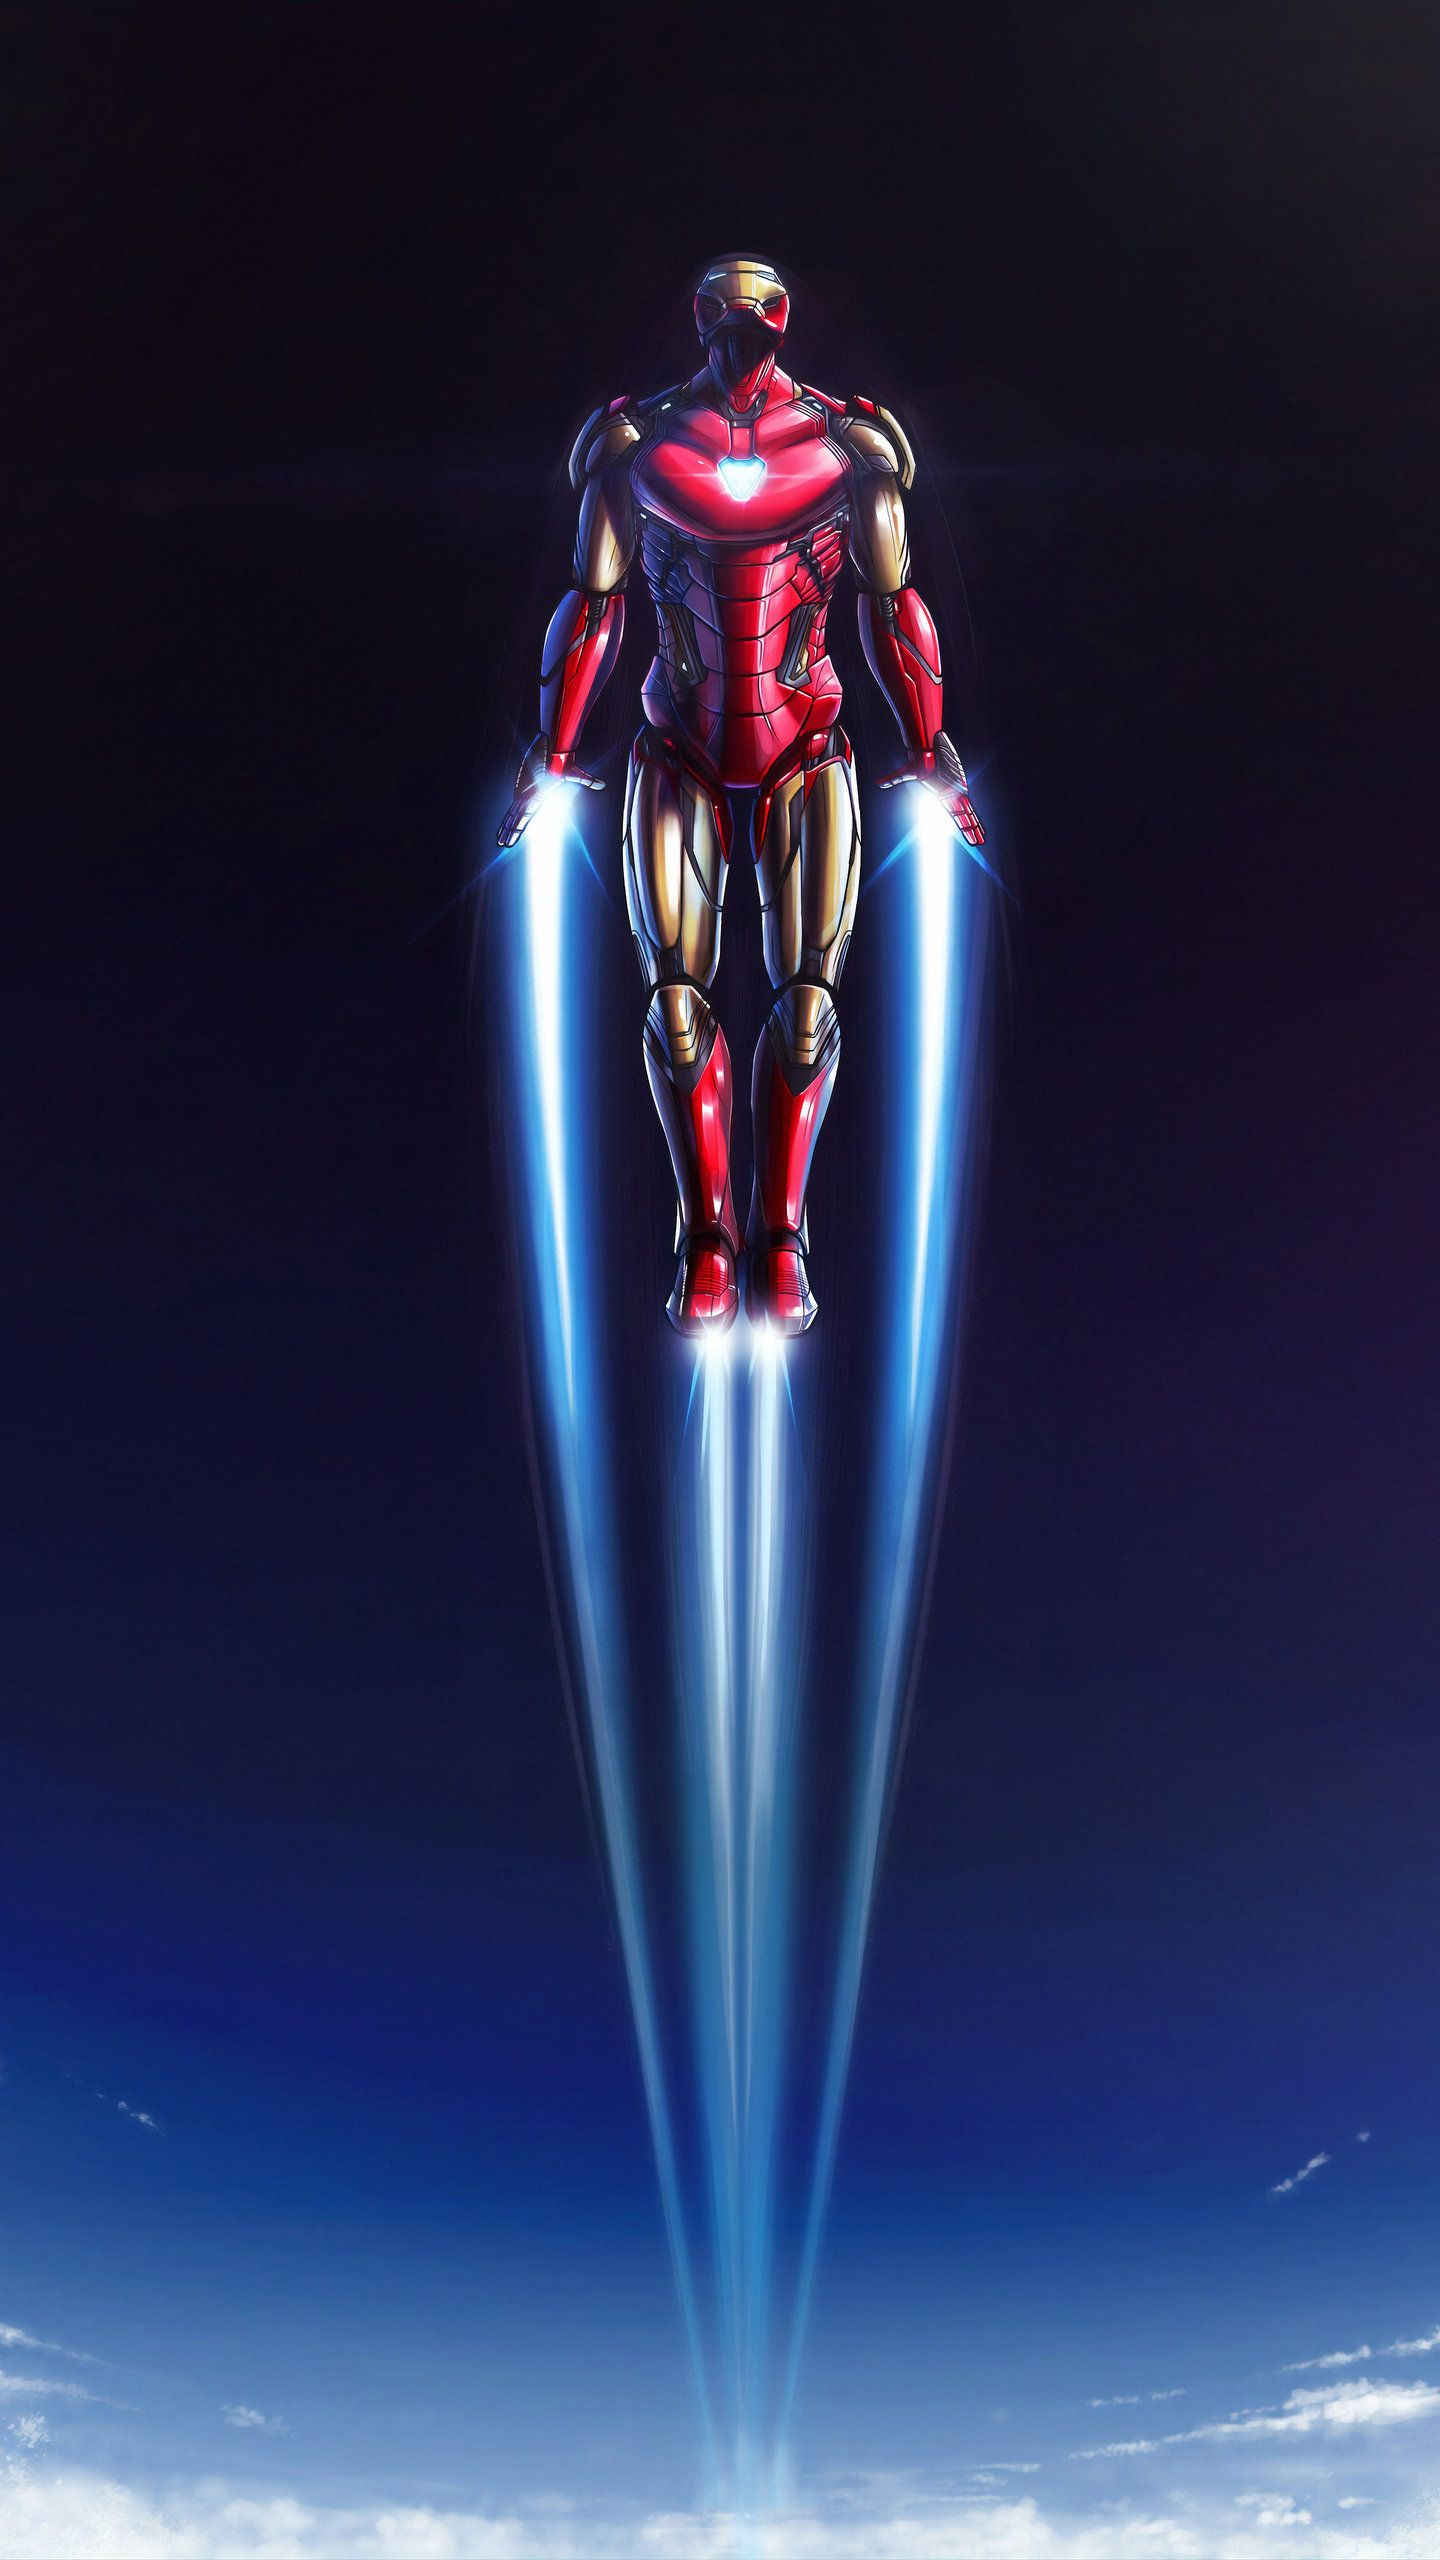 Iron Man 4k New Flying Hd Superheroes Wallpapers Photos And Pictures In 2020 Iron Man Flying Iron Man Avengers Marvel Superhero Posters